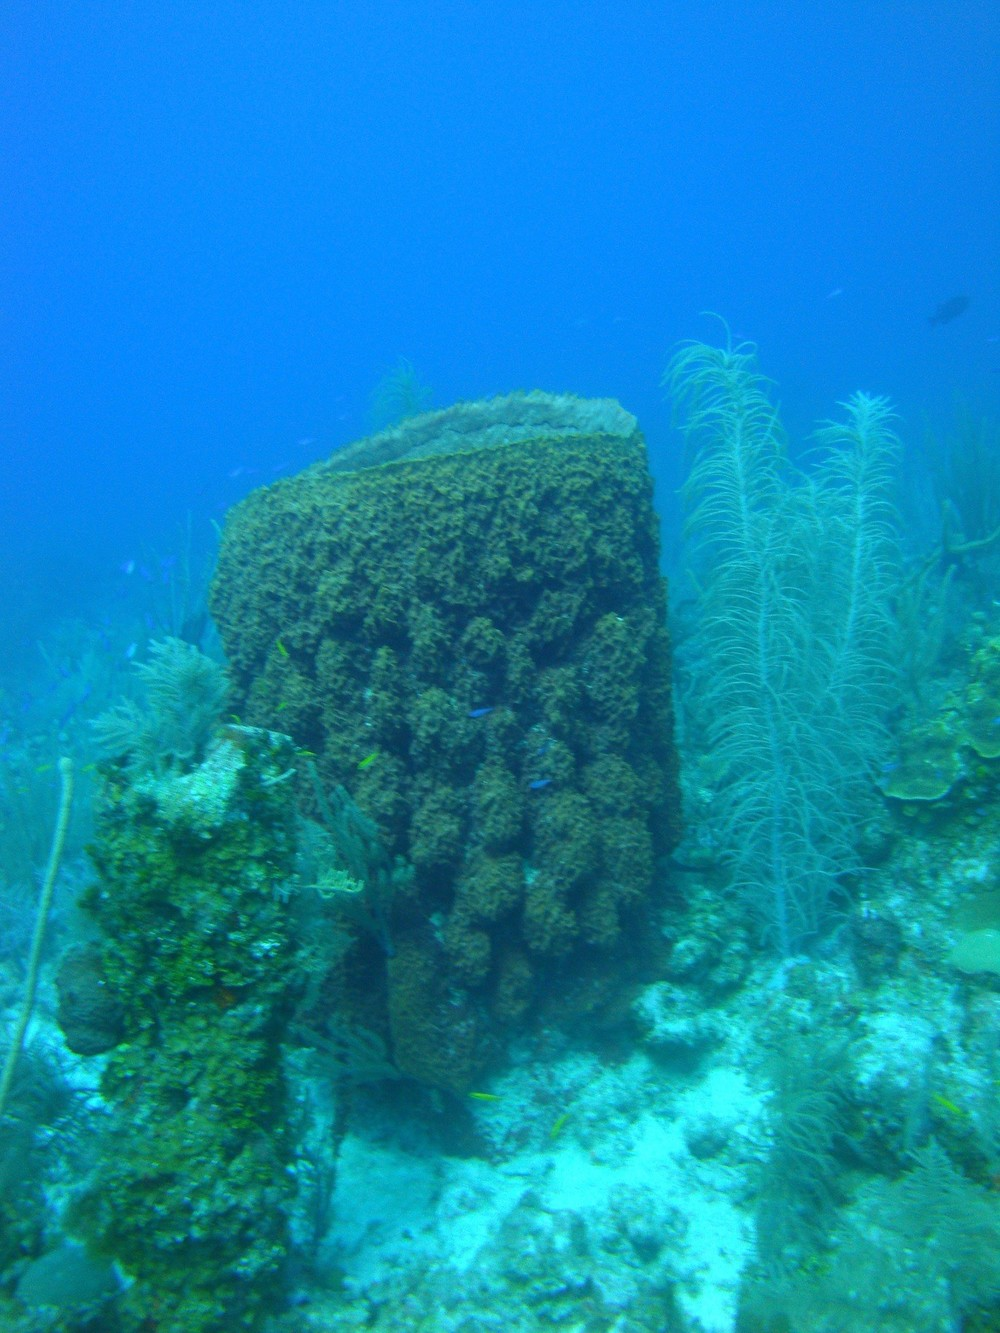 The above photo shows a giant barrel sponge, Xestospongia muta, in the center of the image on a coral reef near Little Cayman in the Caribbean. The sponge in this photo is about 5 ft tall! Next to the sponge are some soft corals and just in front of the sponge are several small colorful reef fish. Photo courtesy of Cara Fiore.